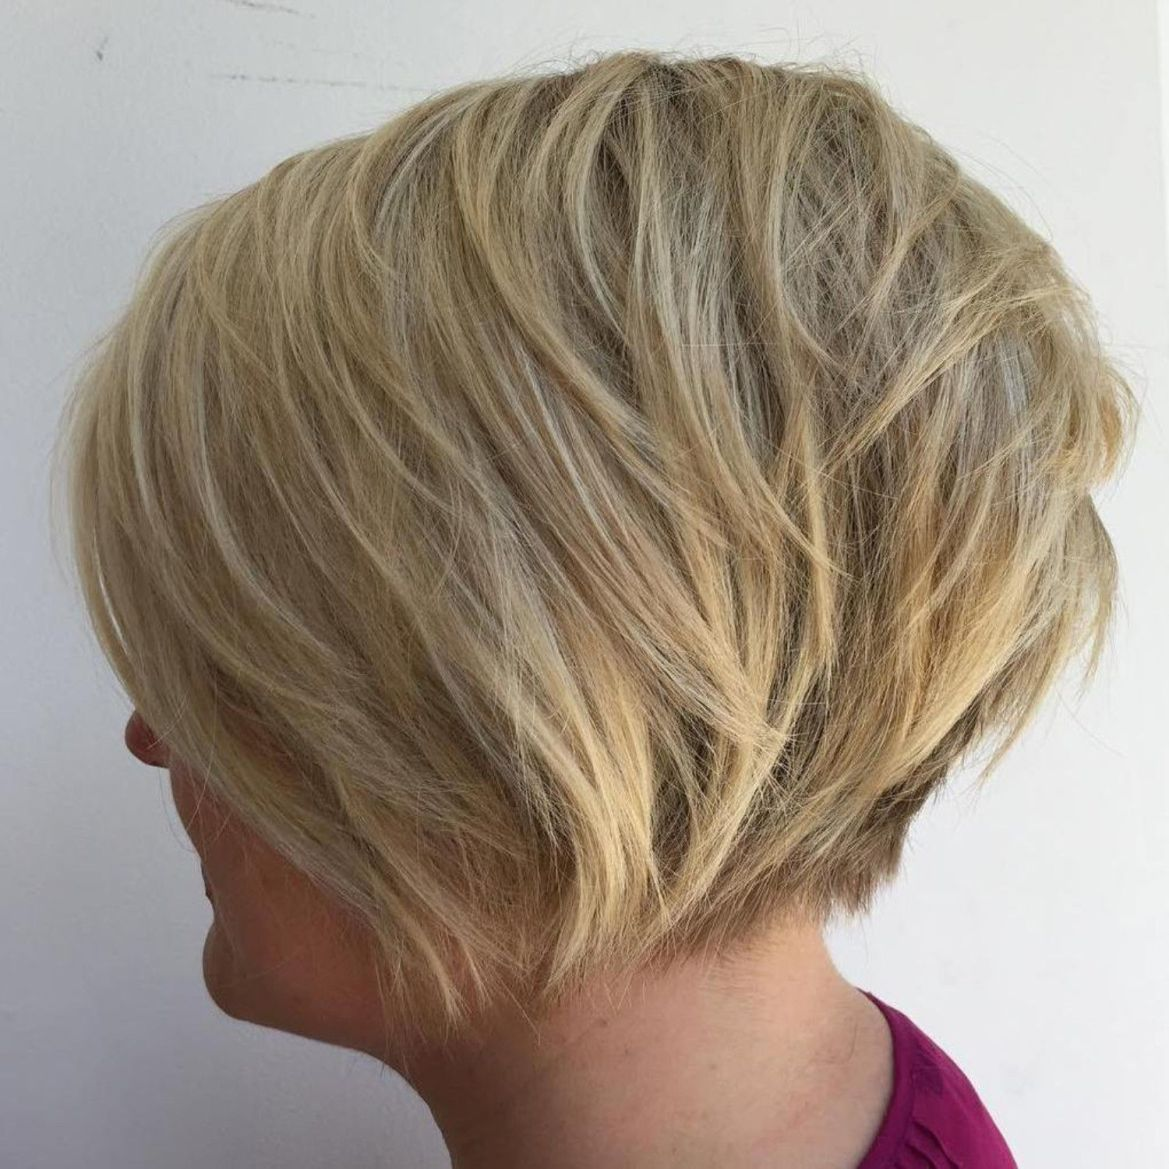 cute and easytostyle short layered hairstyles in short